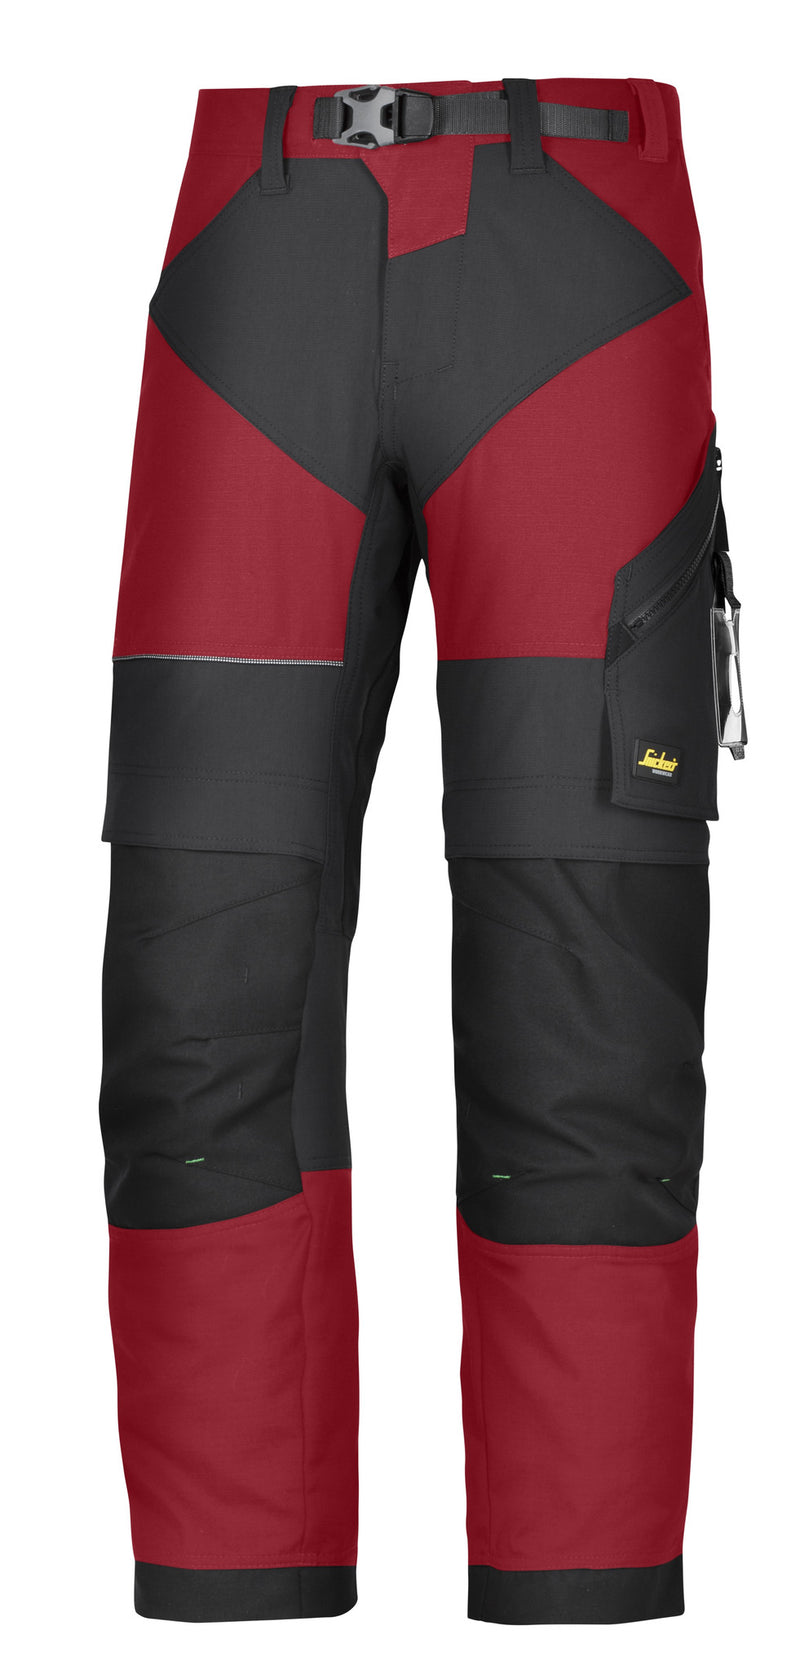 Snickers 6903 FlexiWork werkbroek+ - Chili red - Snickers Werkkledij